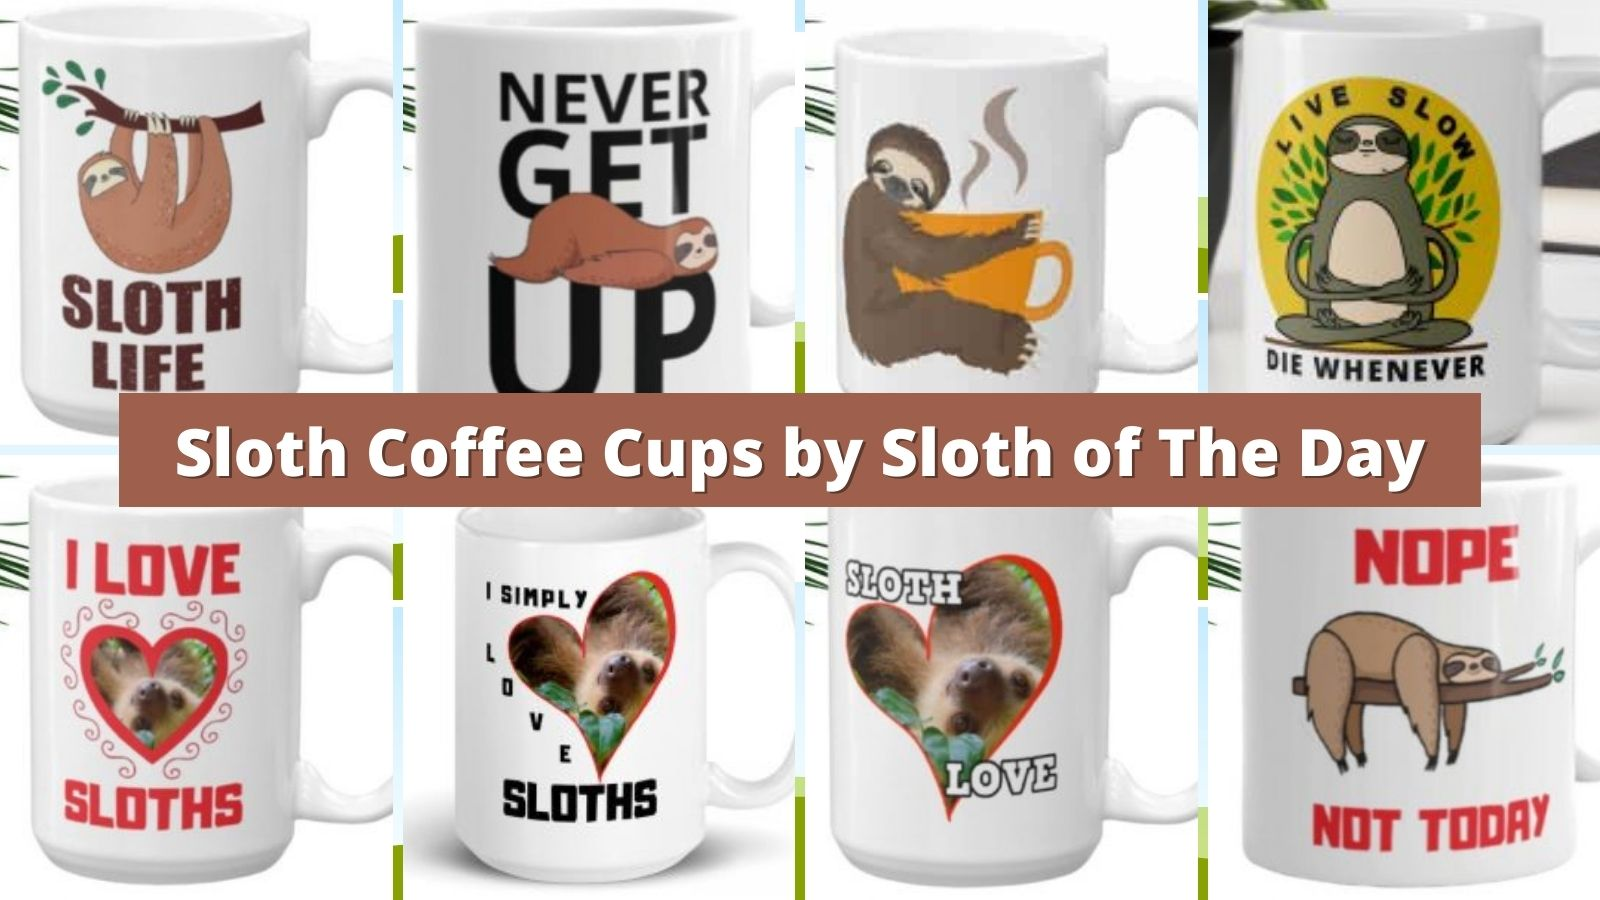 Sloth Coffee Cups by Sloth of The Day Cups